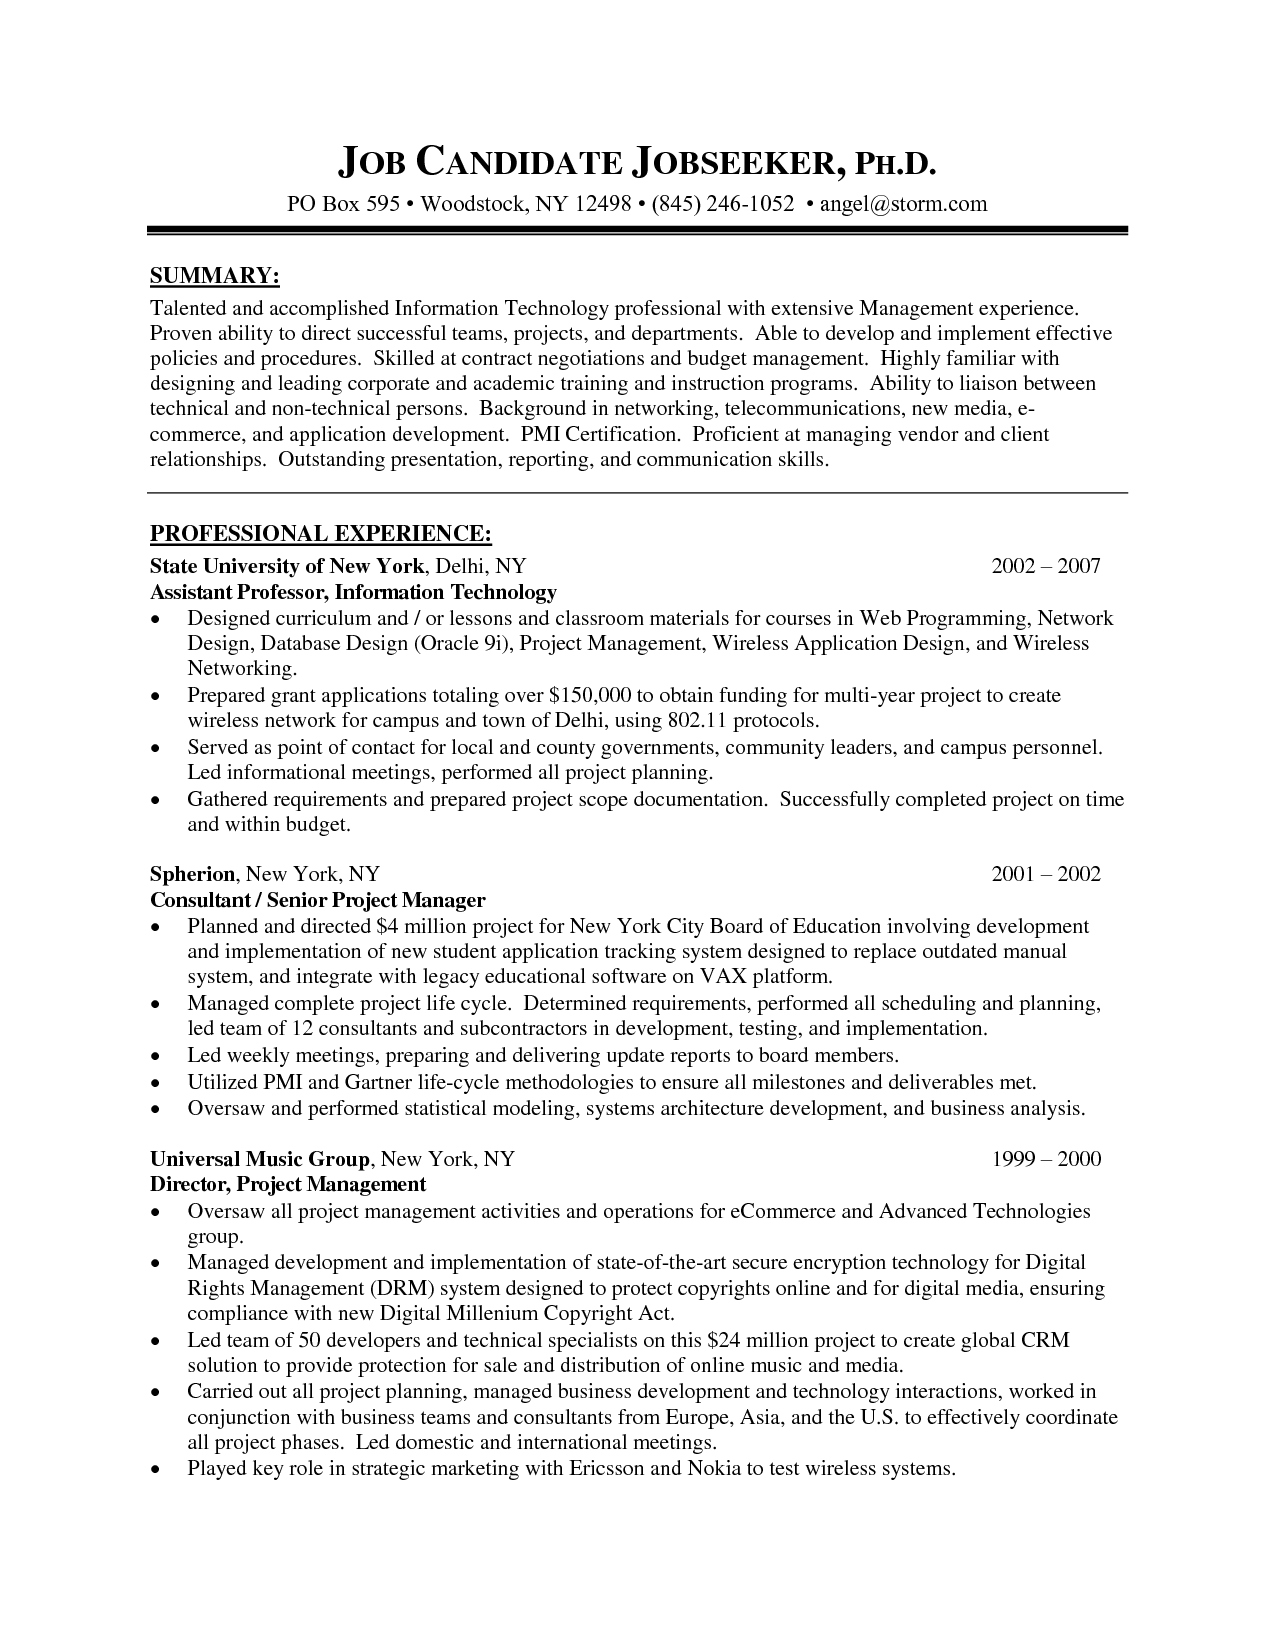 manager resume free sample senior project with summary examples compare writing services find local - Example Management Resume